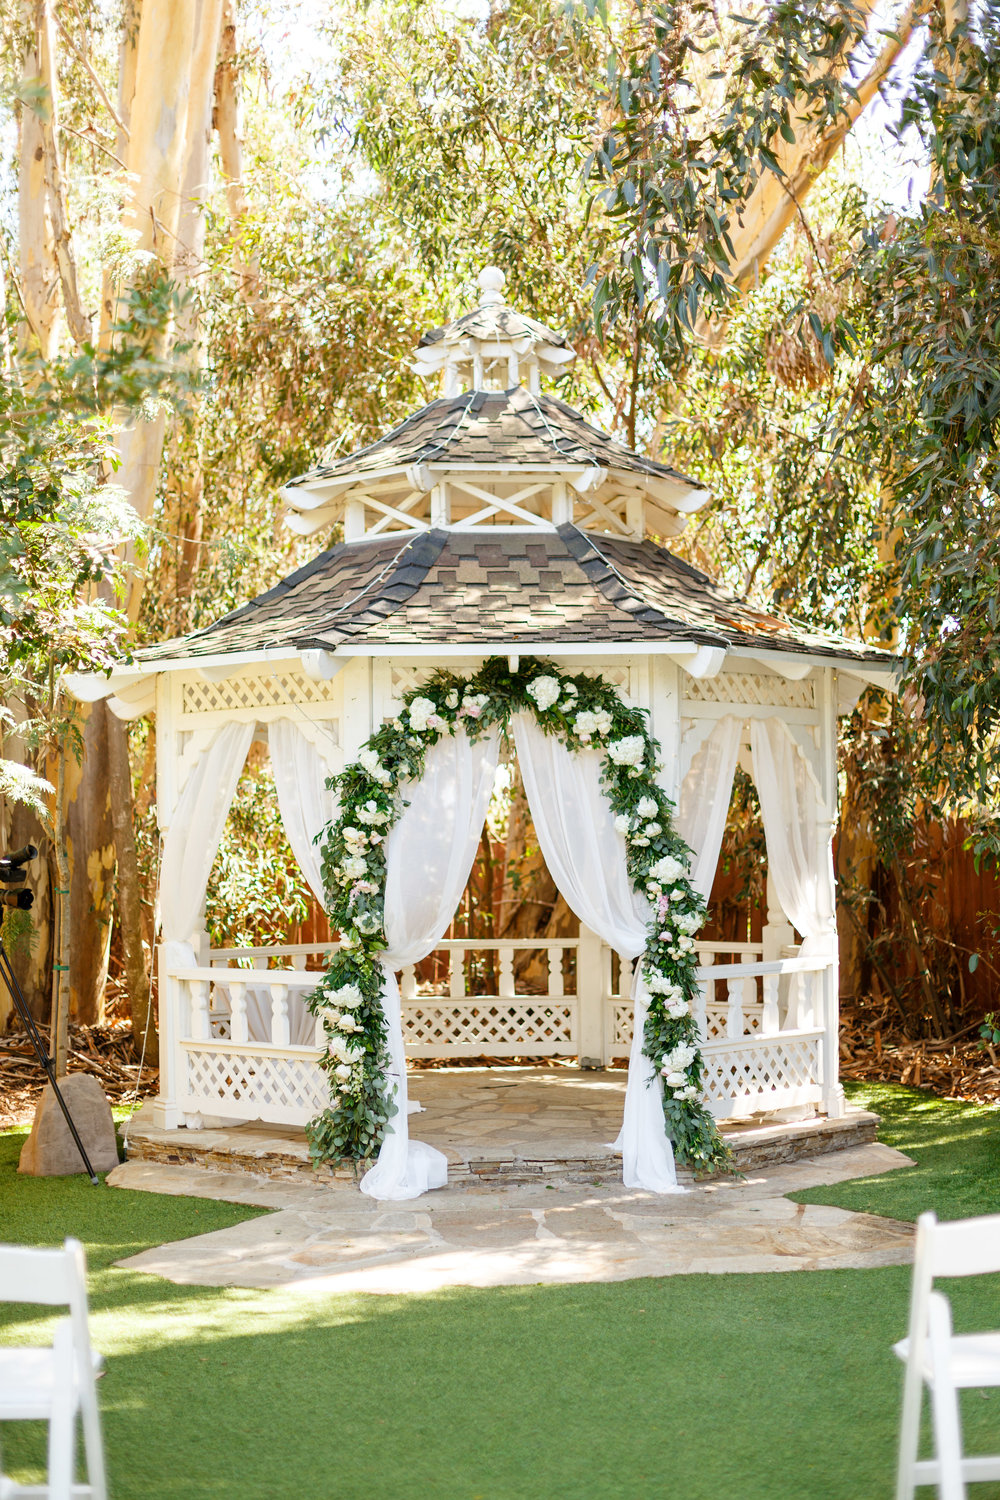 Wedding gazebo flowers.jpg